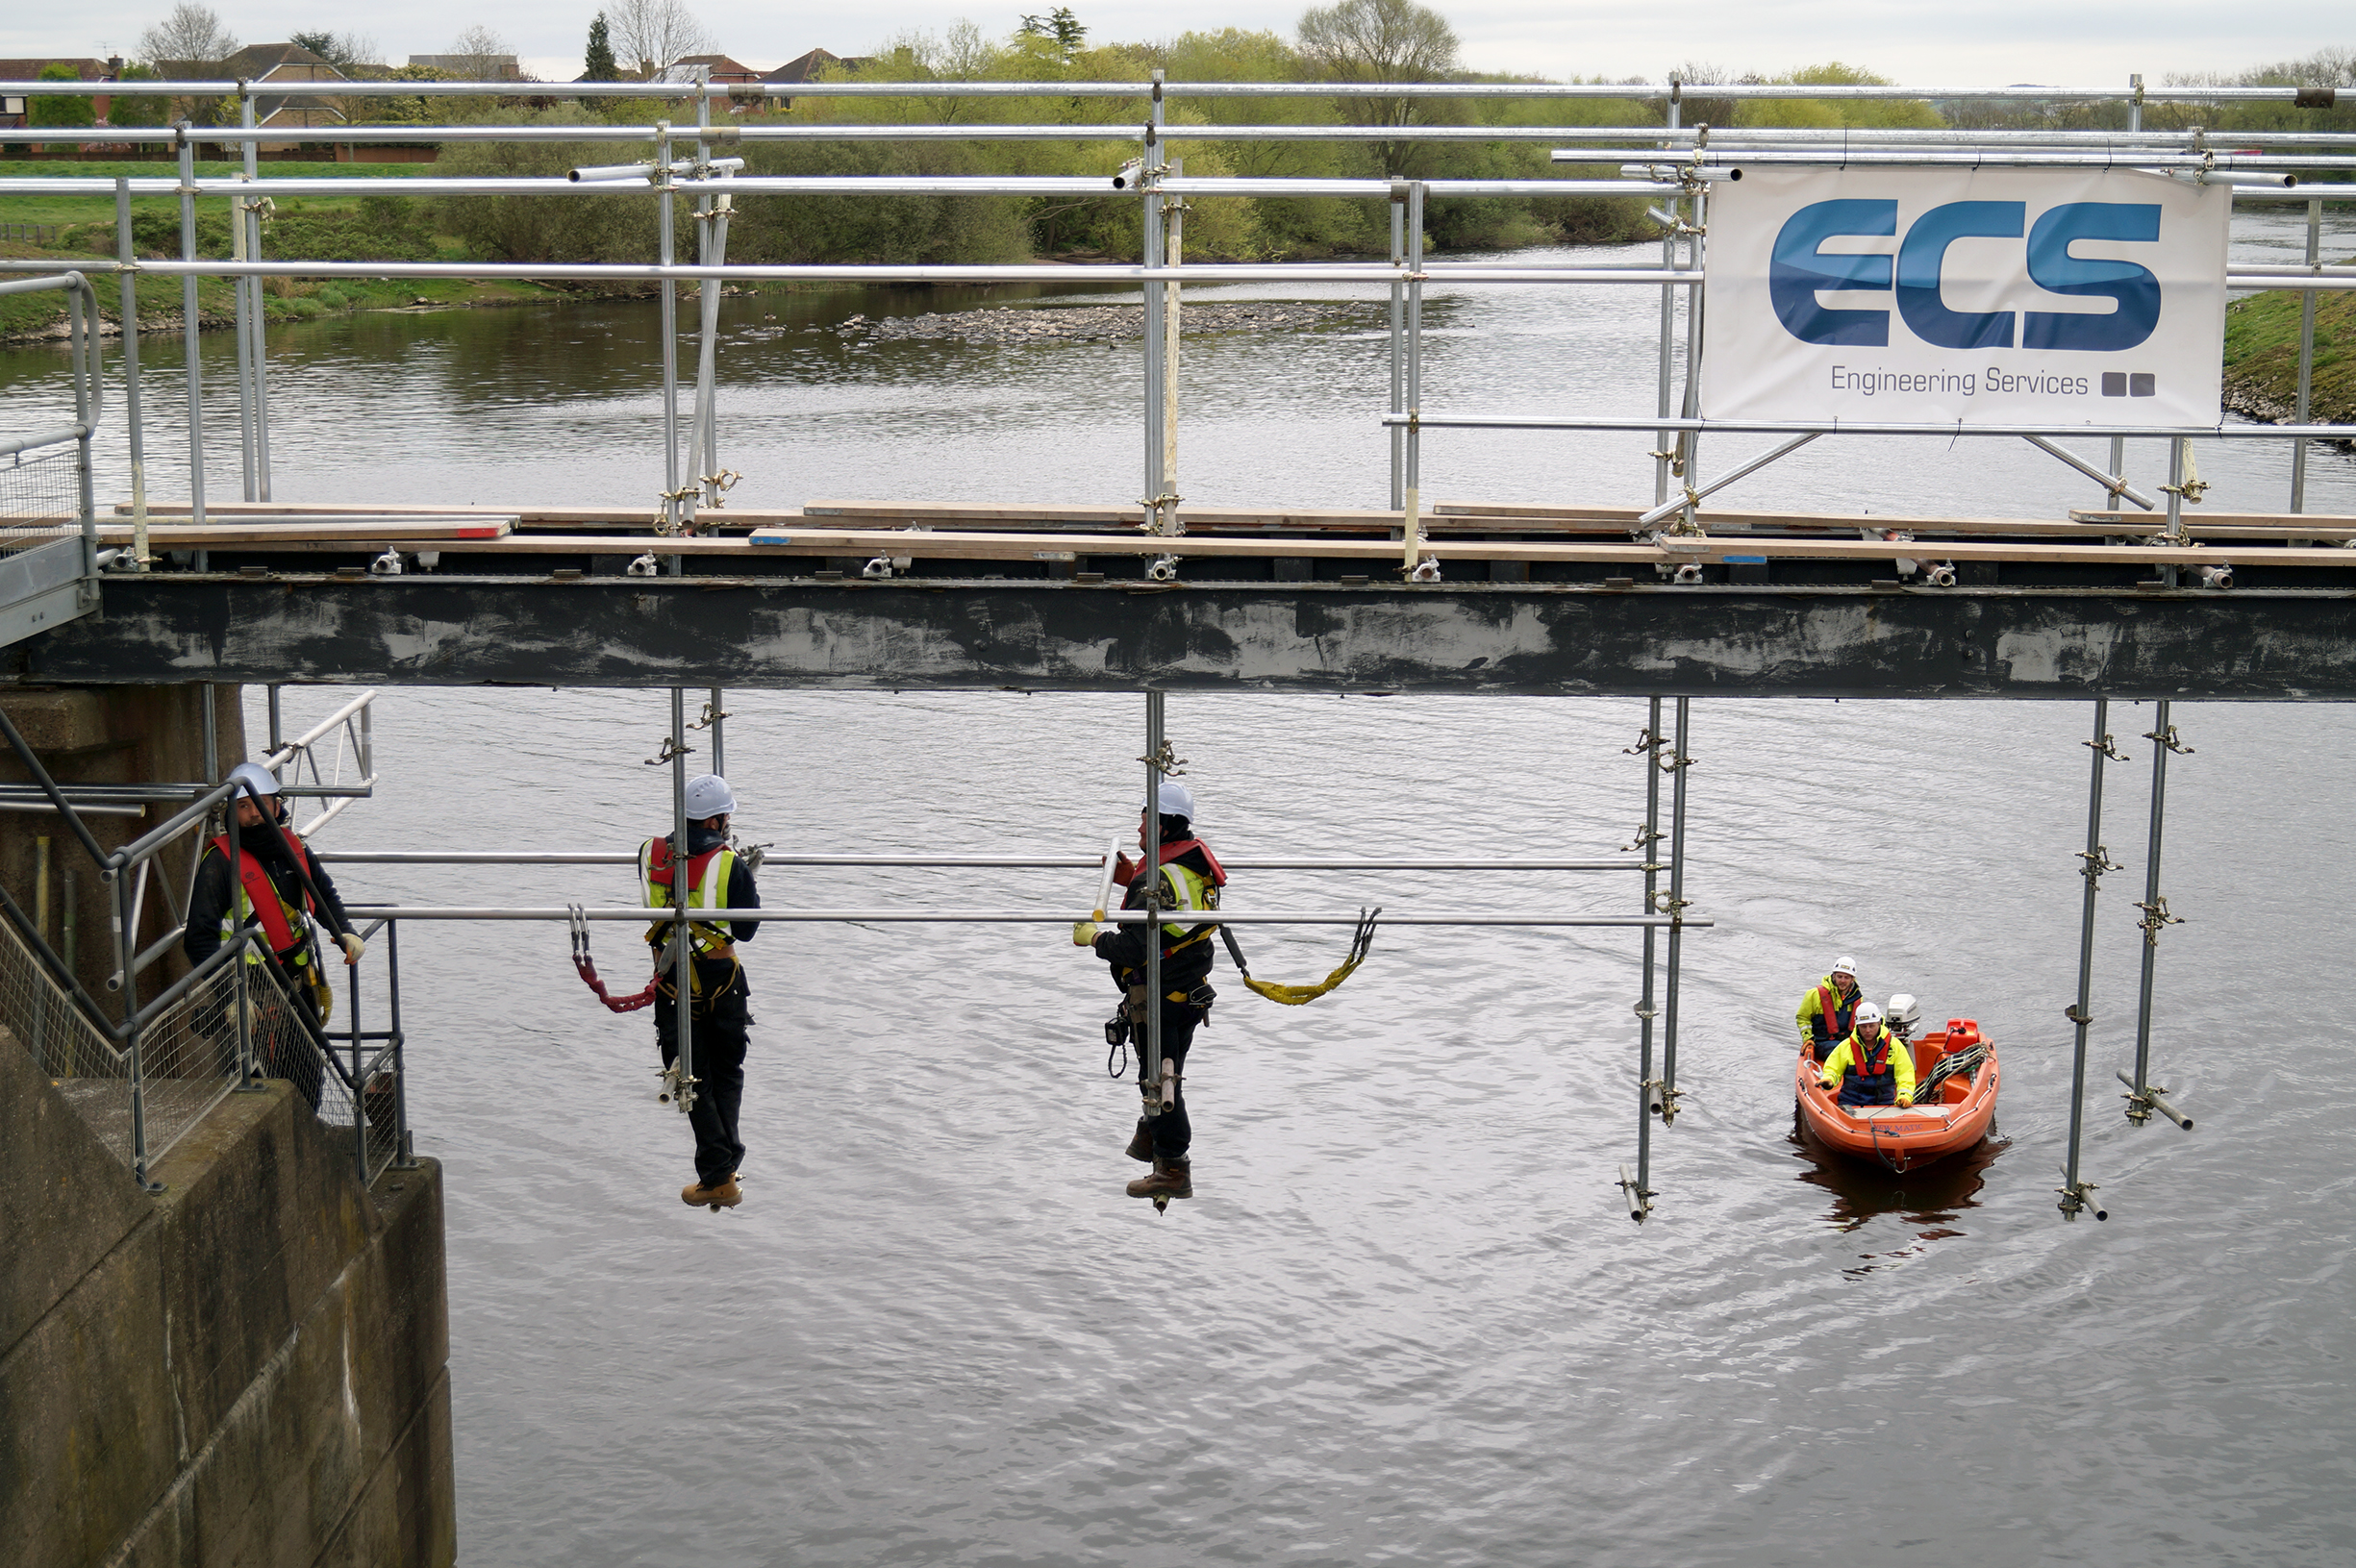 River rescue procedures for maintenance project proven